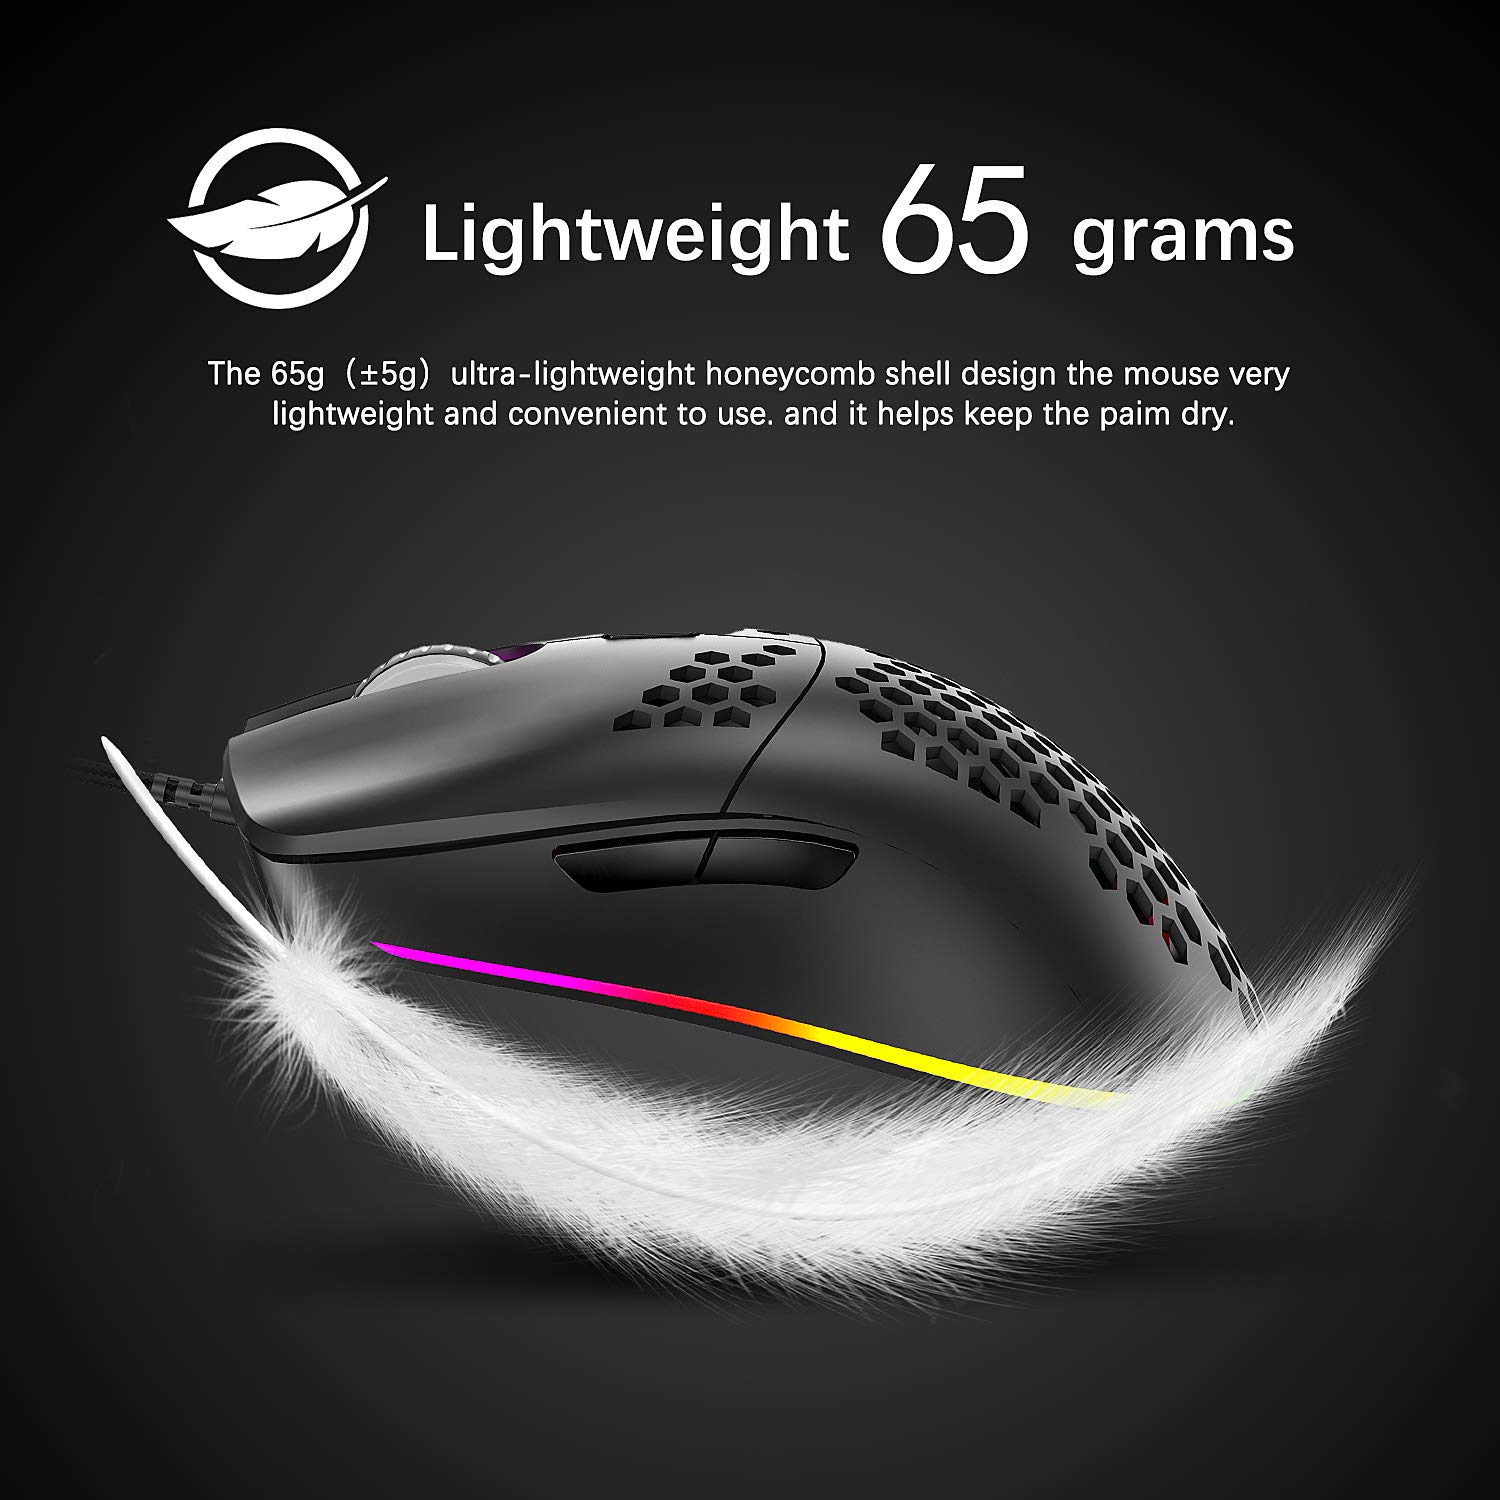 Lightweight Wired Gaming Mouse with 7 Button 26 RGB Backlit Programmable Driver PAW3325 12000 DPI Optical Sensor Ultralight Ergonomic 65G Honeycomb Shell Ultraweave Cable for PC Xbox PS4 Gamer Black